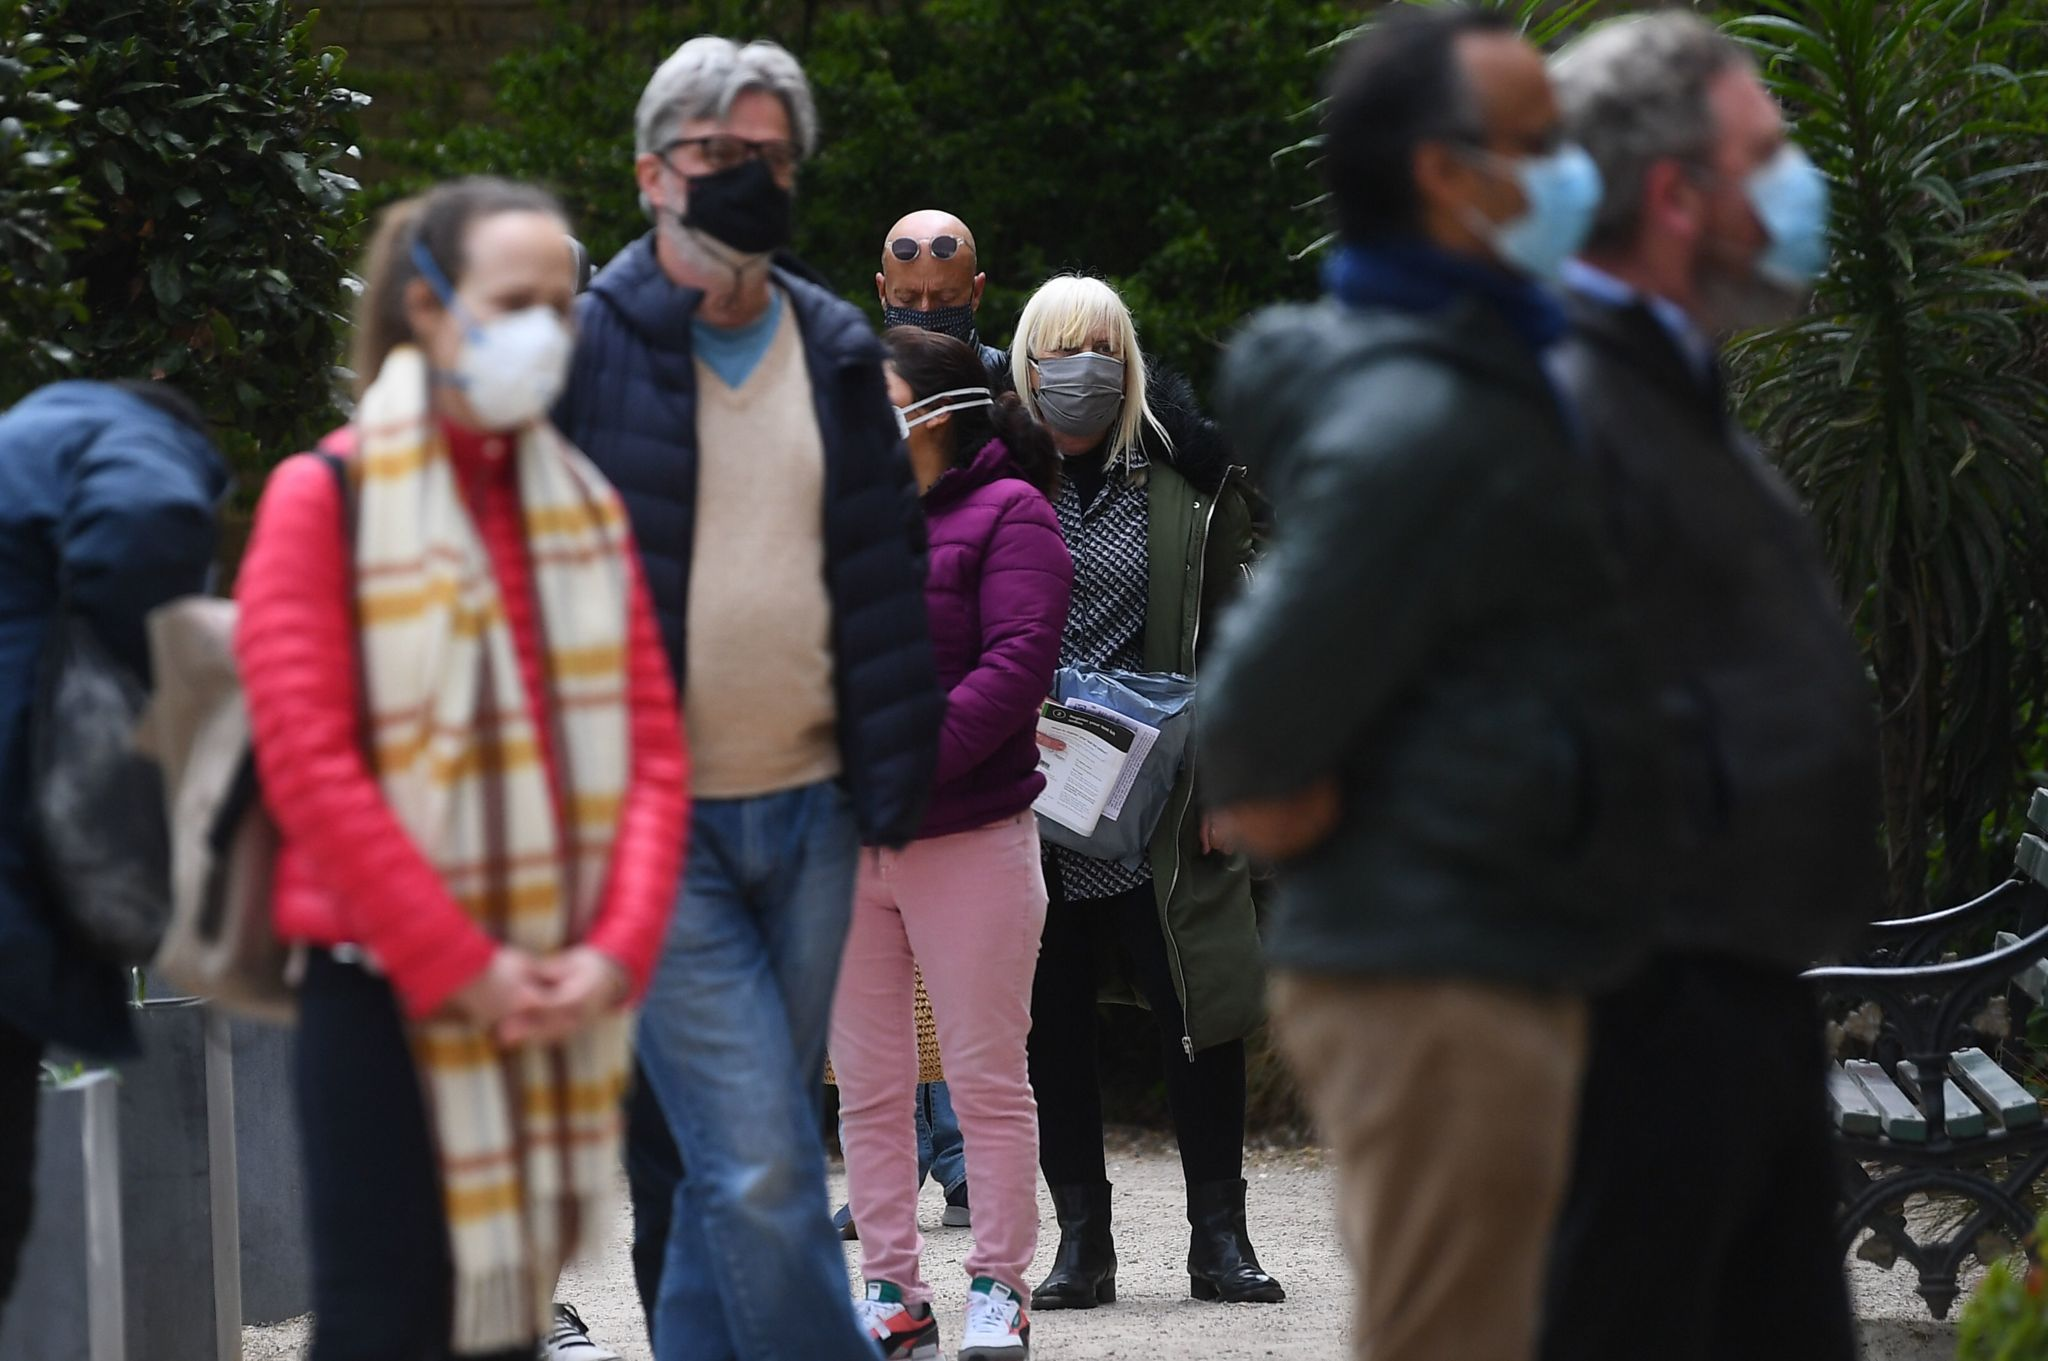 People take Covid-19 tests at a mobile coronavirus surge testing centre in Brockwell Park in south London, on April 13, 2021